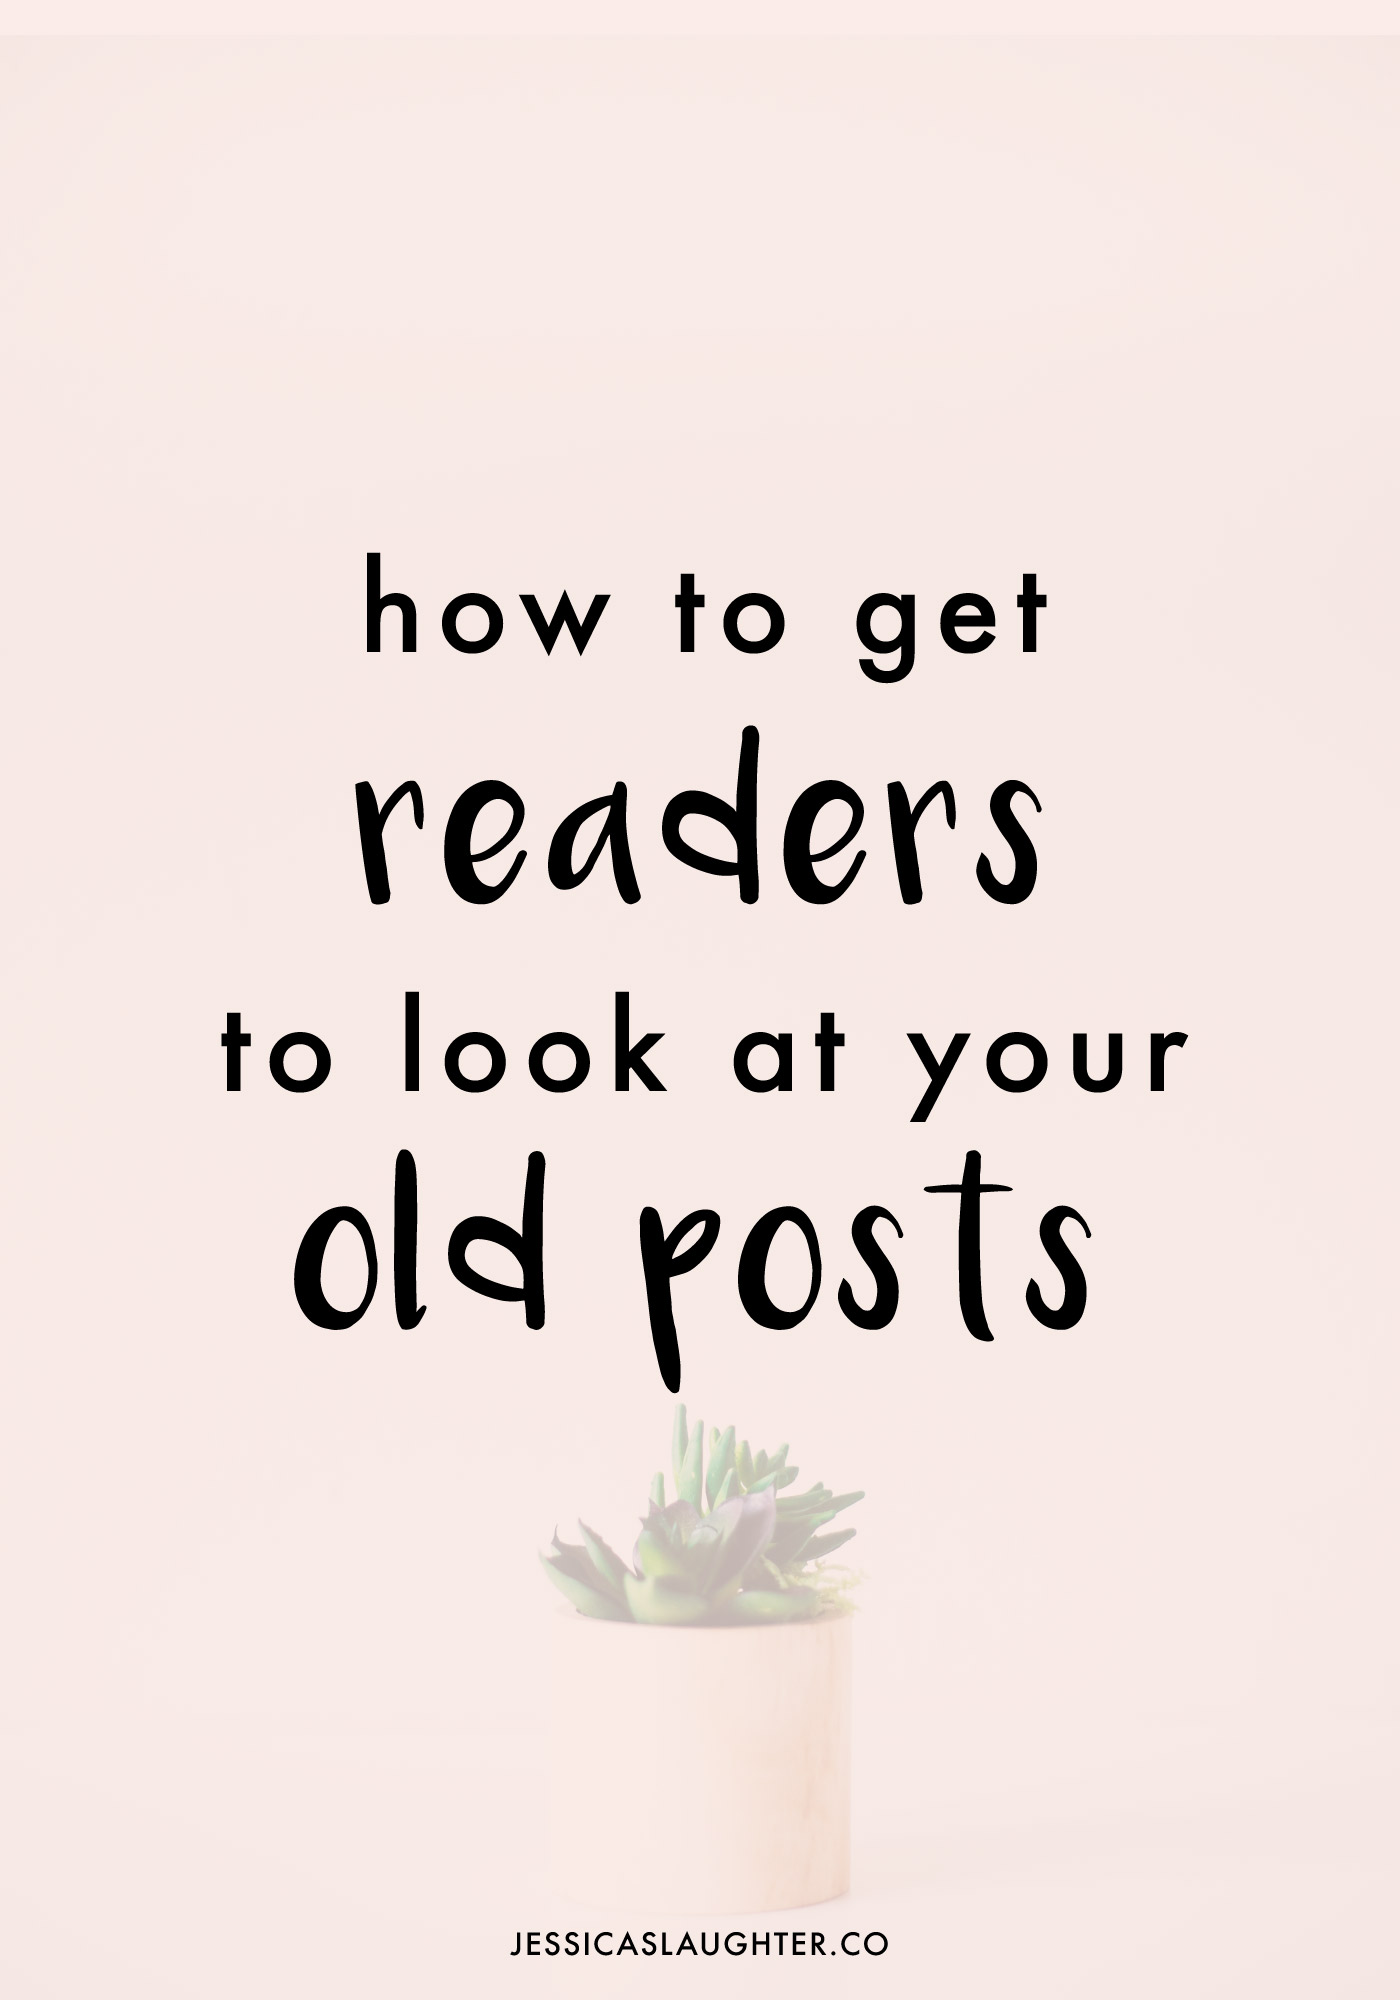 Don't let your old content go to waste! Use these tips to get eyes on your archives!